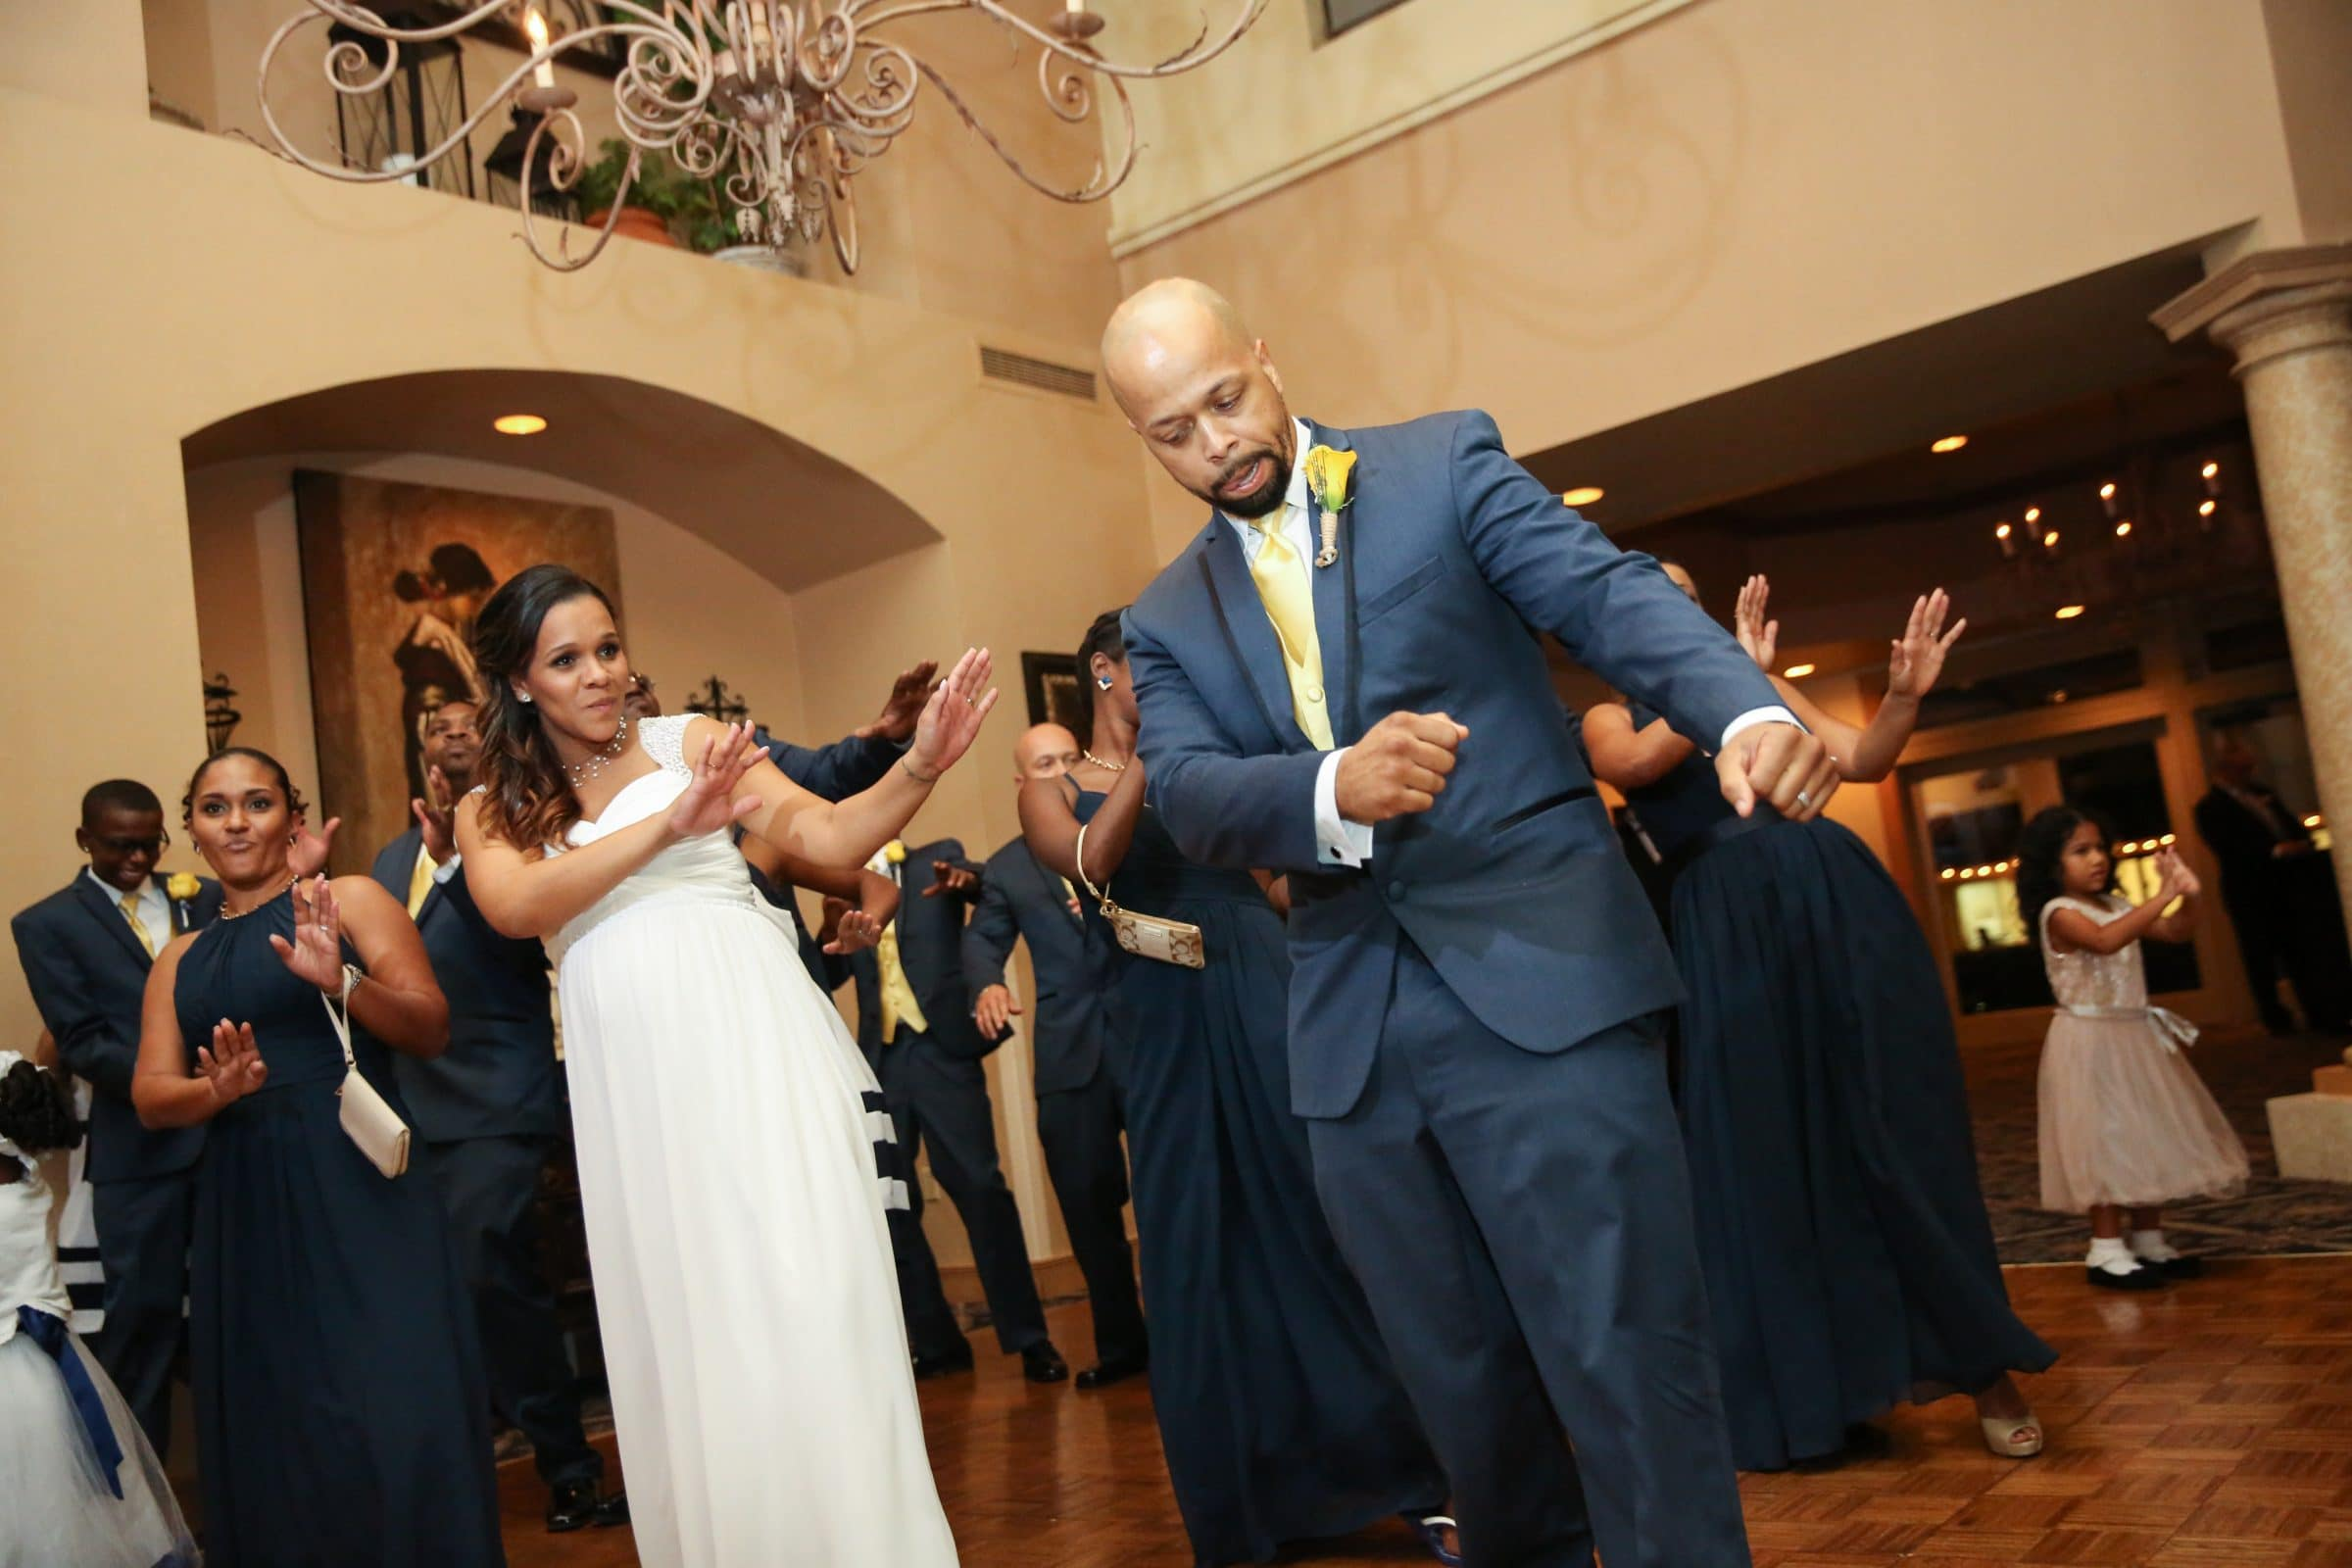 Bride and groom doing line dance at wedding reception